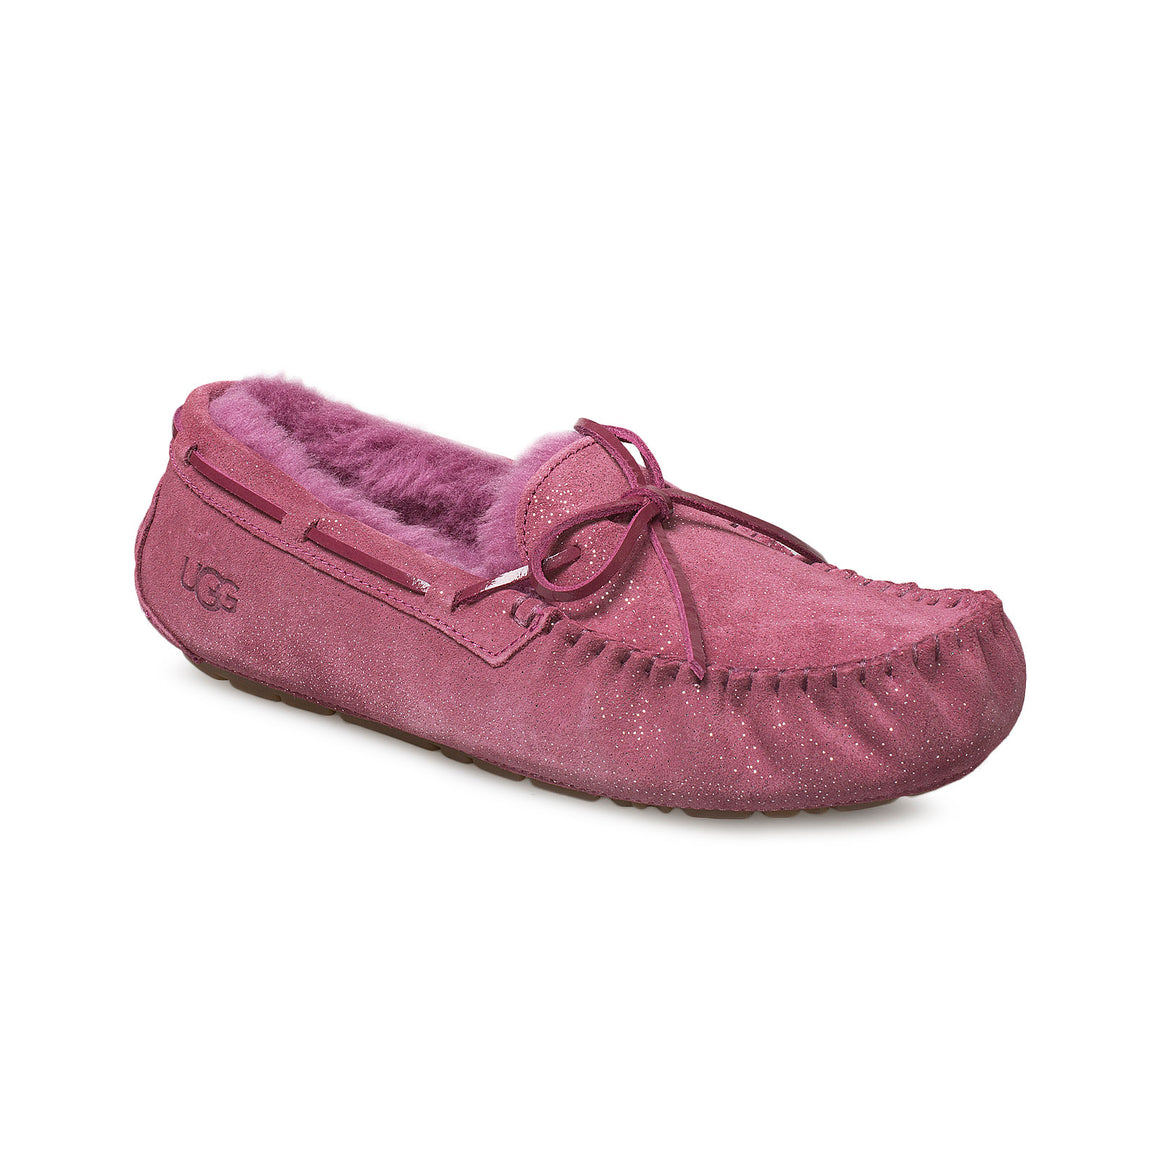 UGG Dakota Twinkle Bougainvillea Slippers - Women's